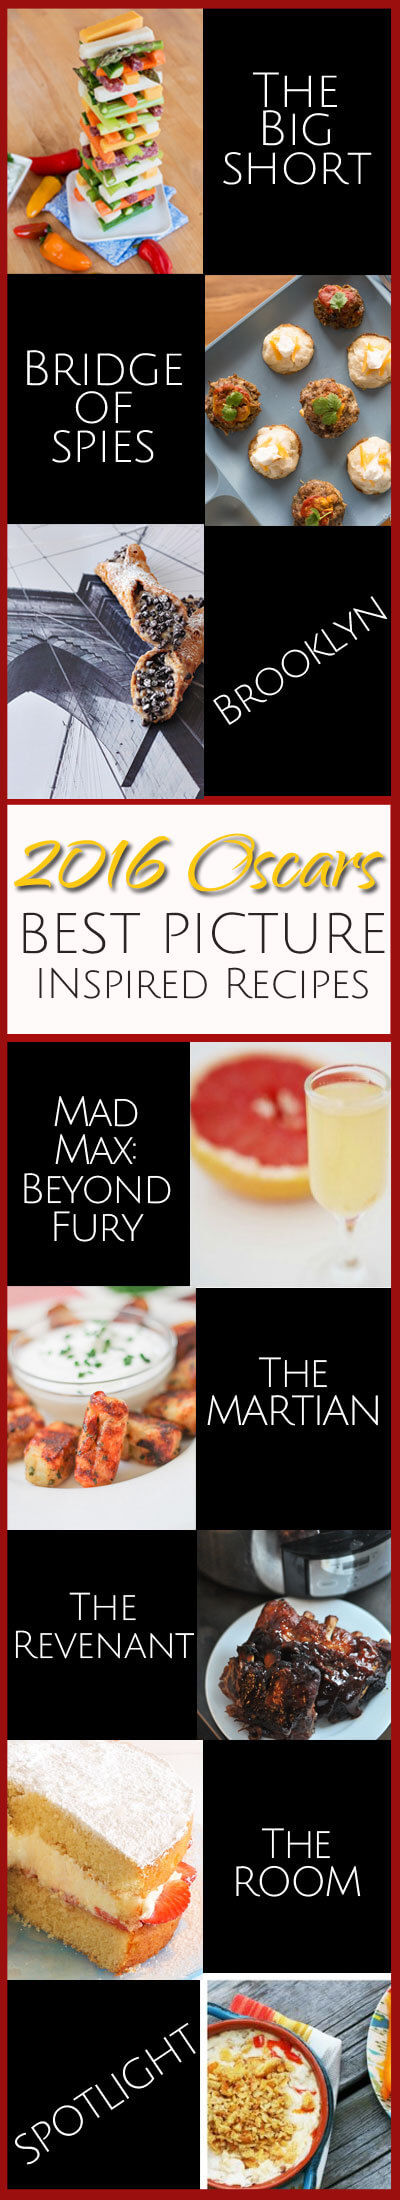 If you're thinking about hosting an Oscars party this year, this collection of best picture-inspired recipes -- along with tips and tricks from food bloggers -- should help you host an award-winning evening for your friends and family.